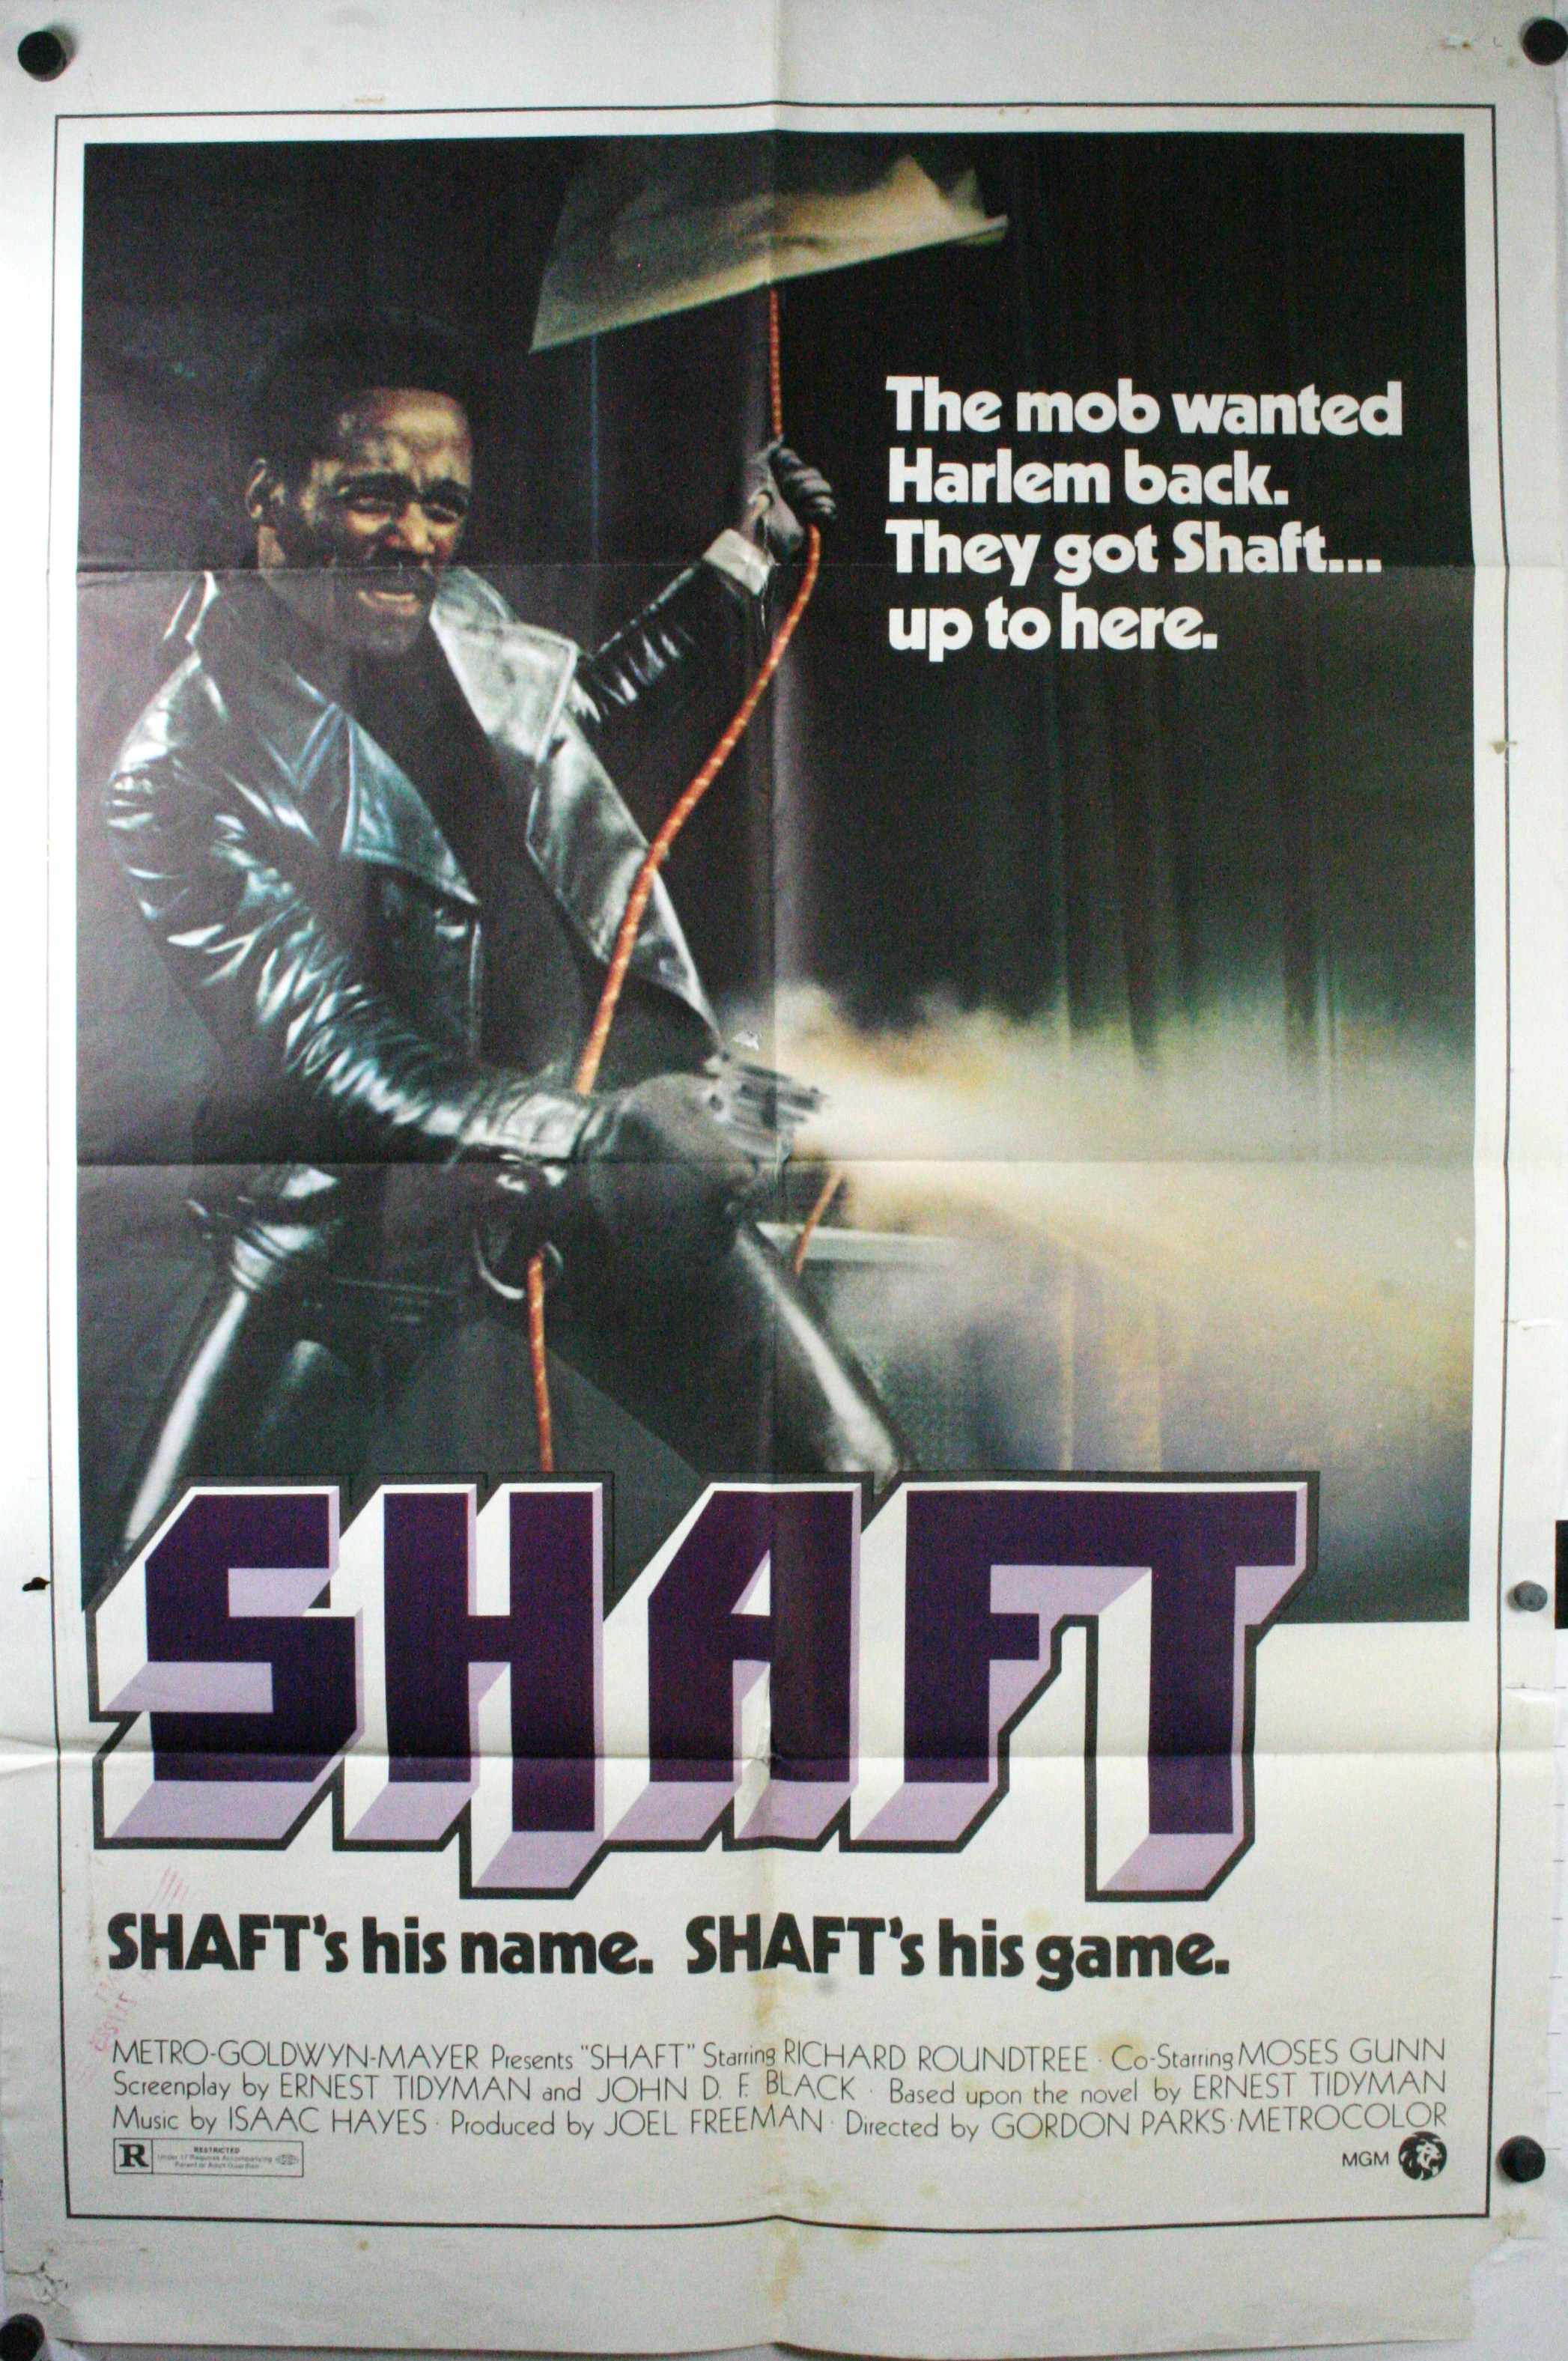 SHAFT, Original Vintage Movie Poster. Isaac Hayes soundtrack